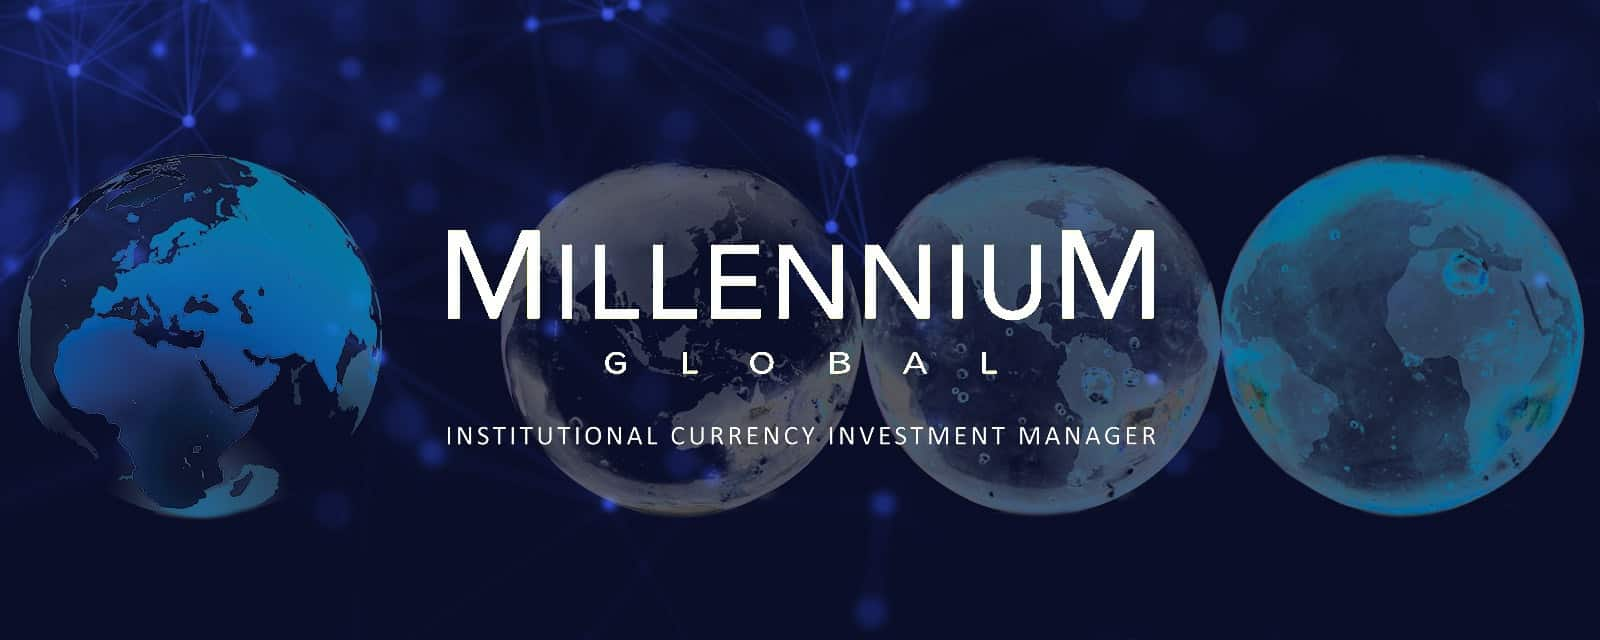 Millennium Global Investments